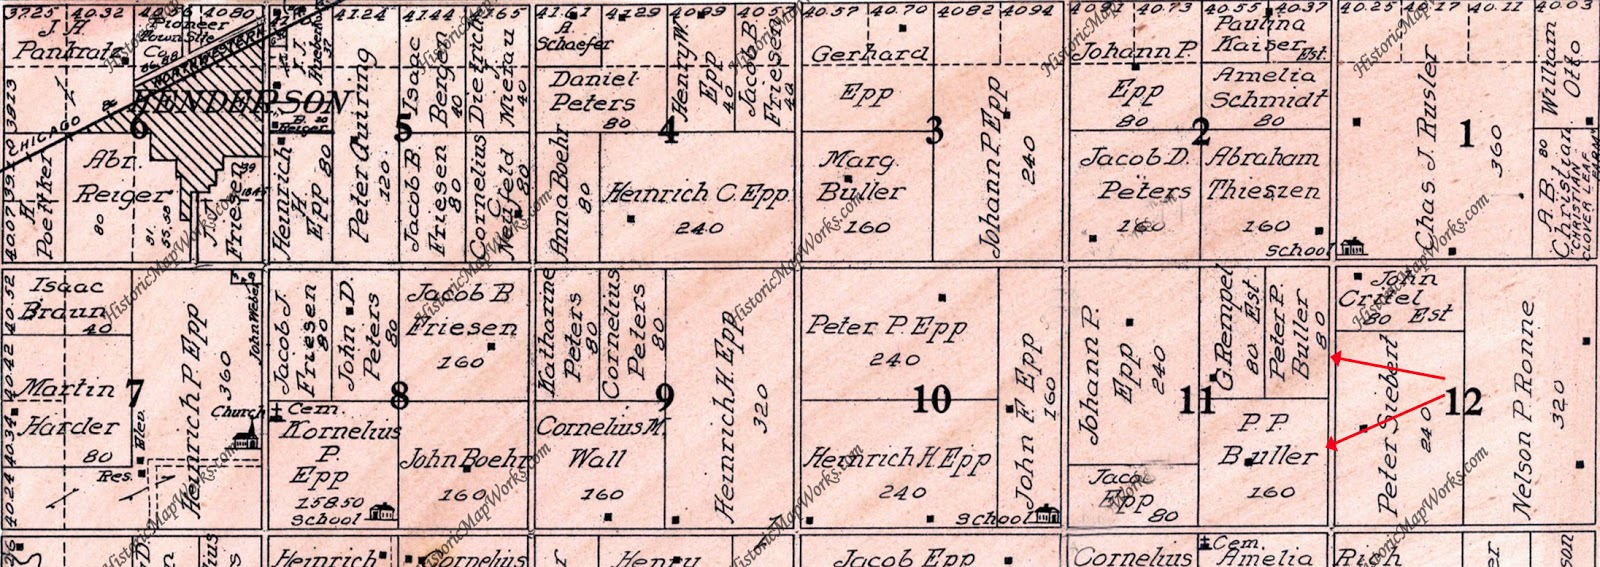 they were married in 1890 and moved in with her parents on a farm 4 miles east of henderson as shown in the 1911 map immediately below